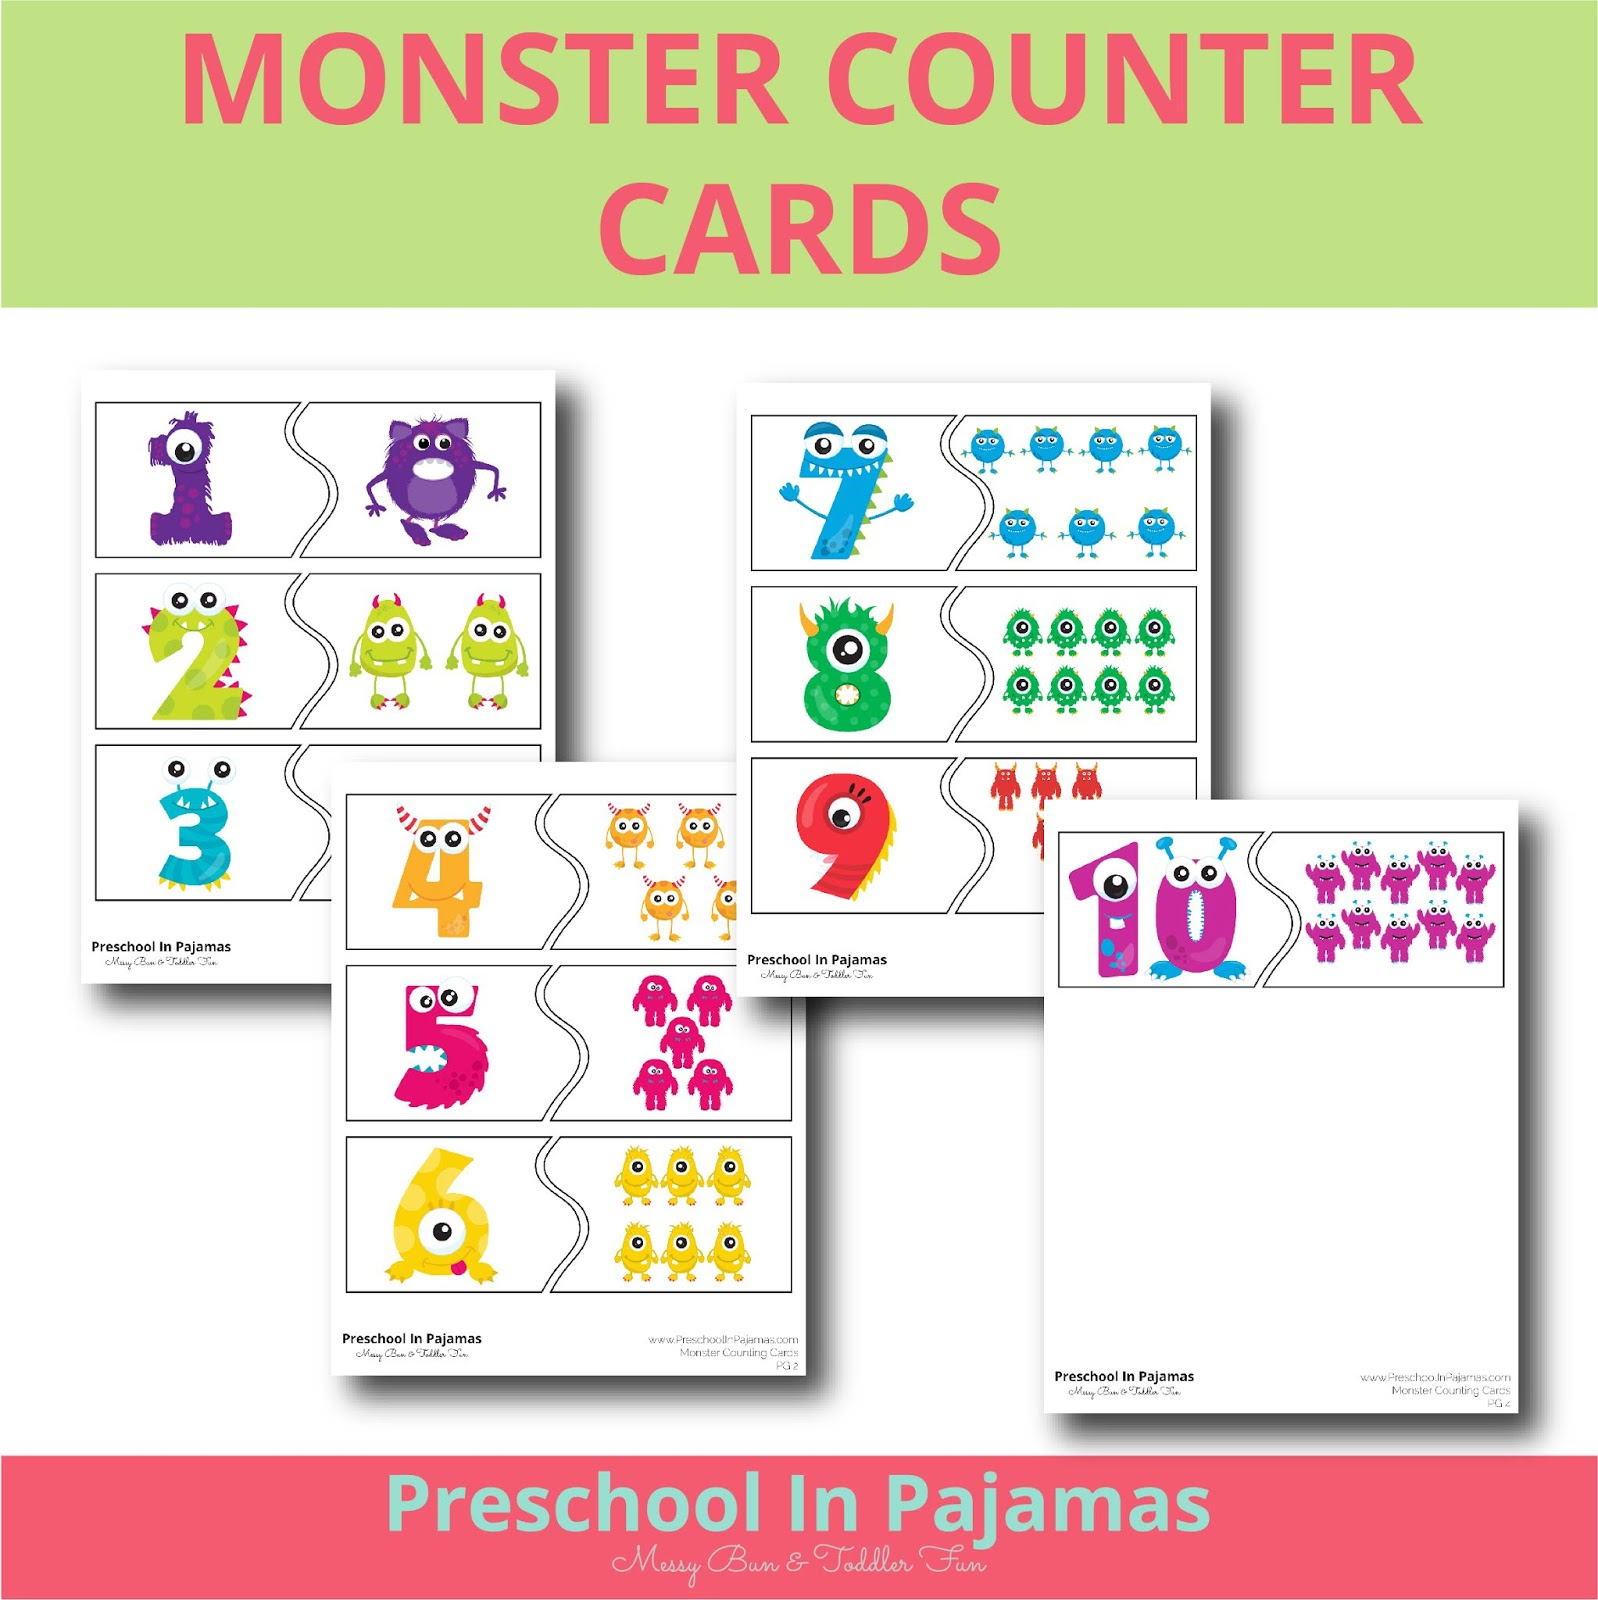 Free Monster Counter Cards Printable